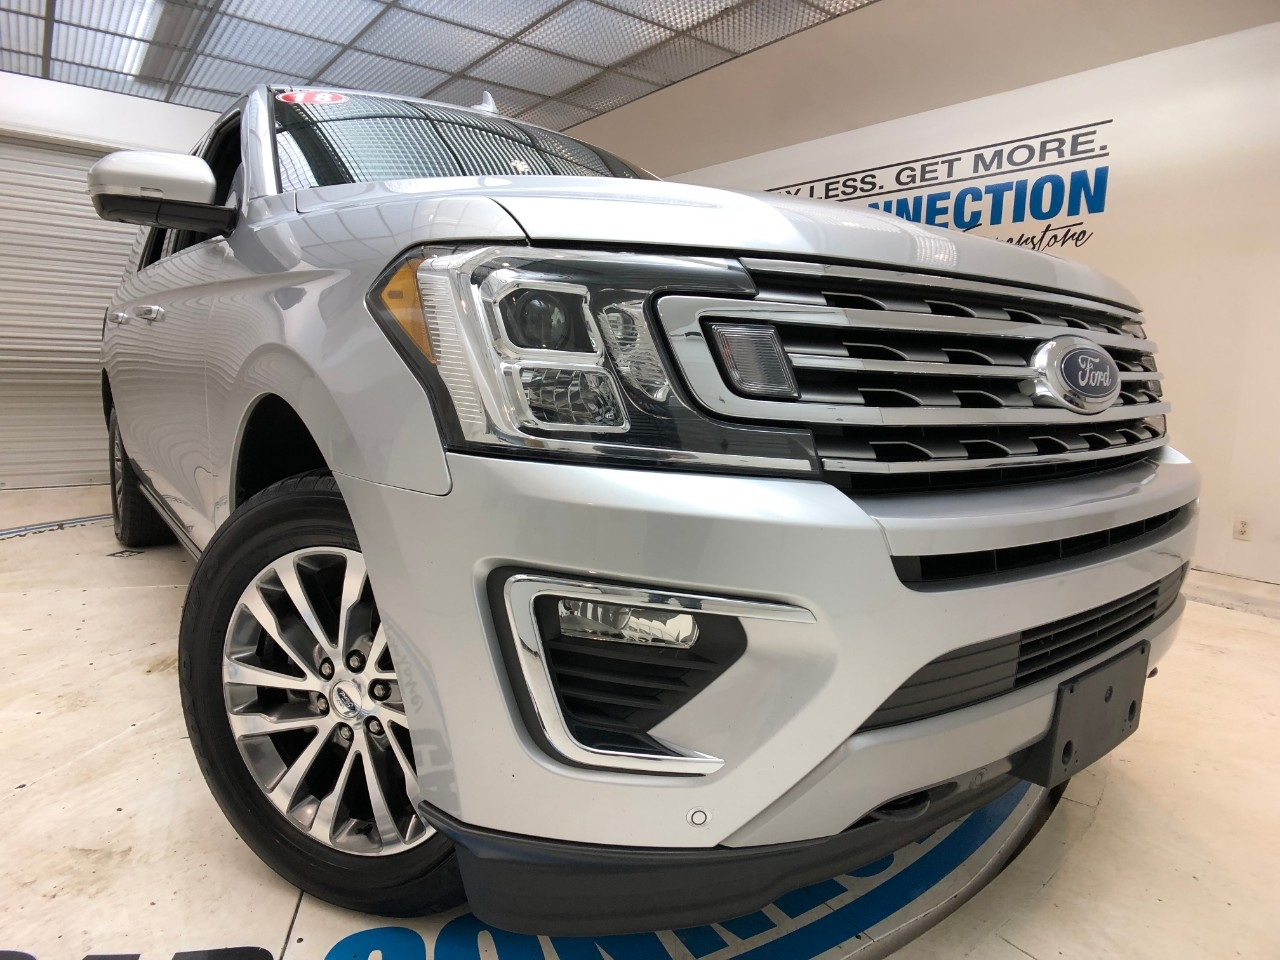 Pre-Owned 2018 Ford Expedition Max LIMITED 4X4 NAVIGATION, HEATED/COOLED SEATS!!